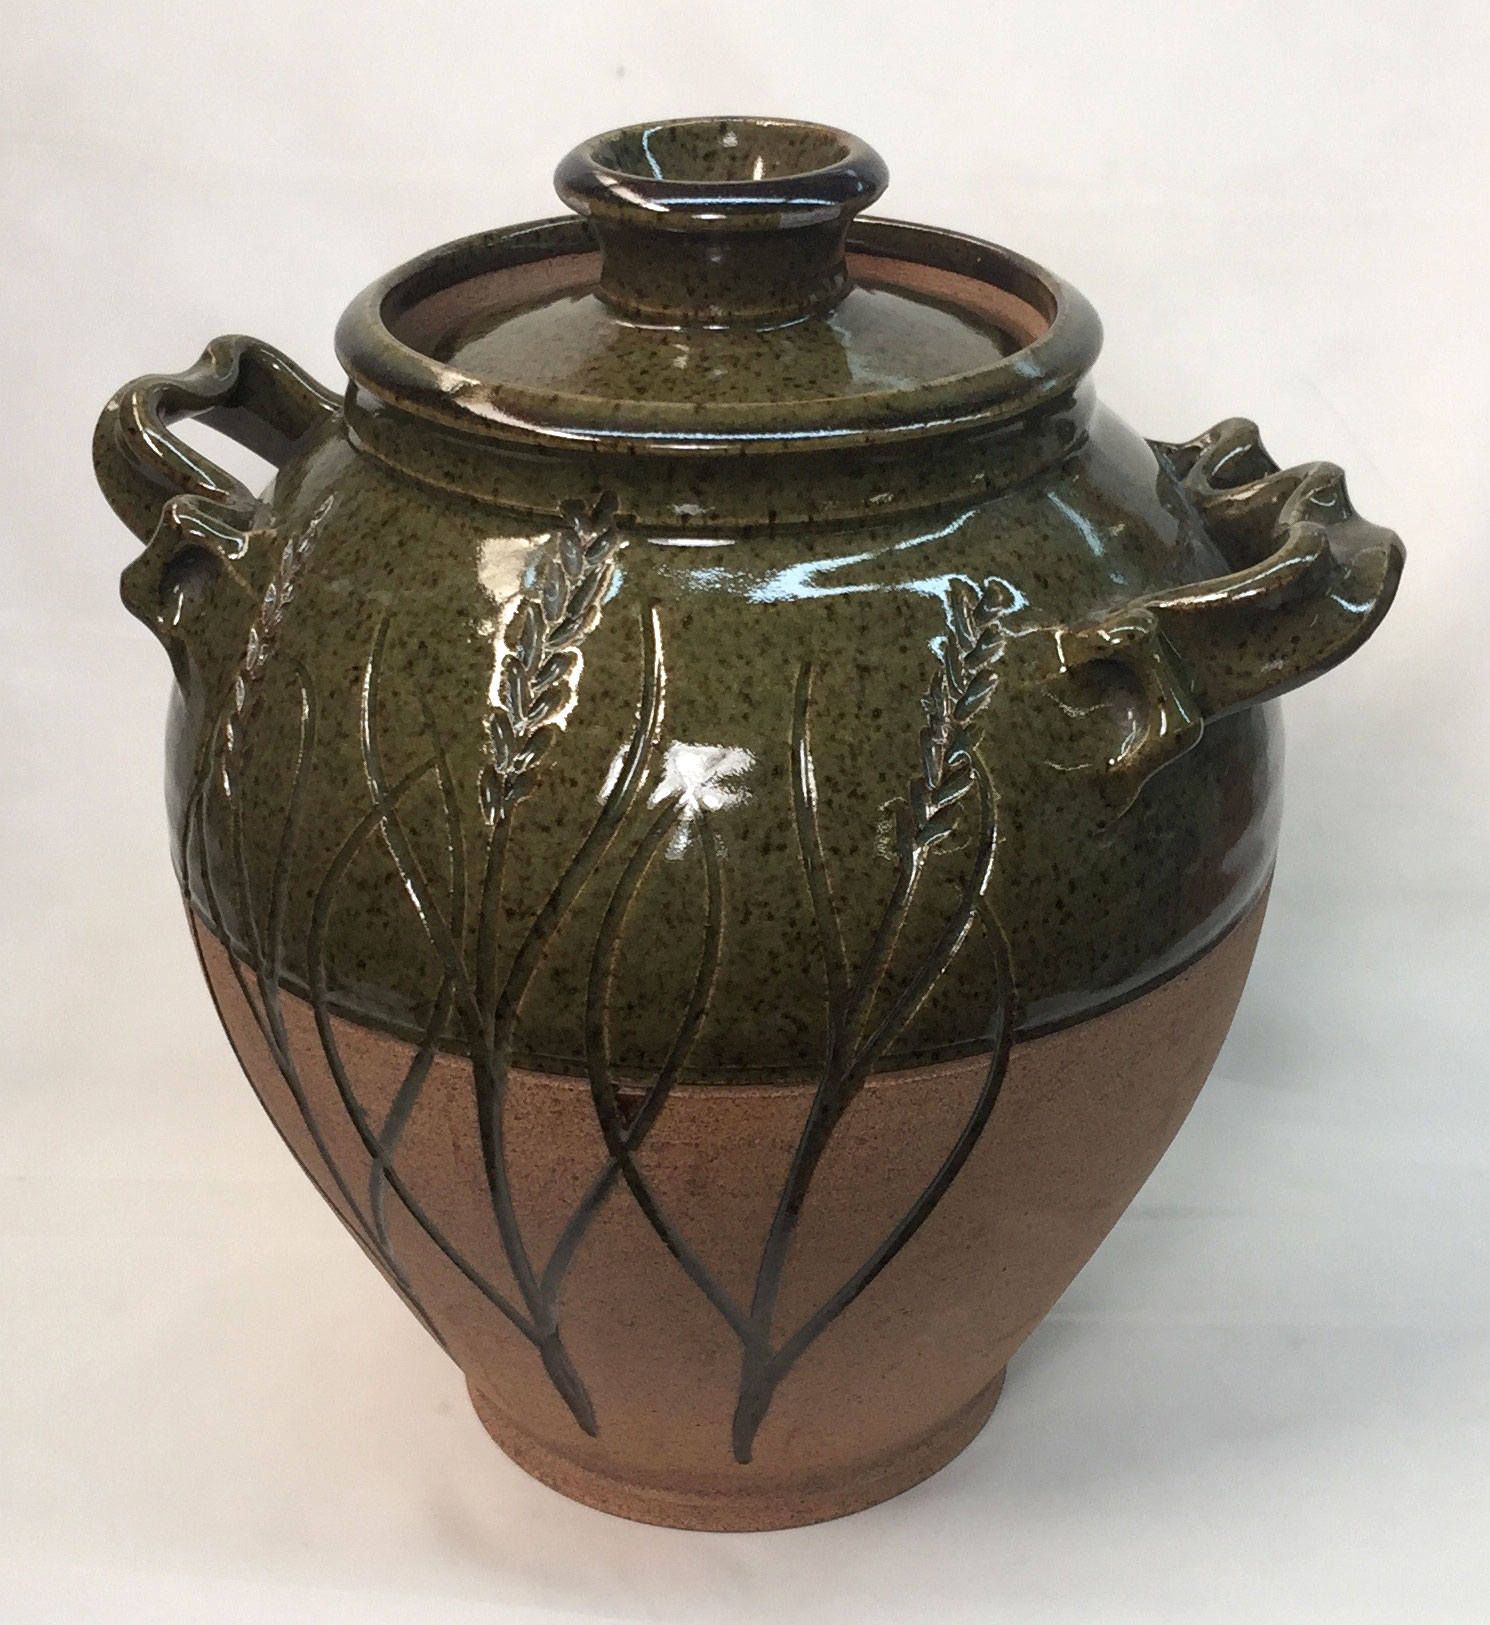 Cone 10 Reduction Fired Beanpot by Tony Hansen